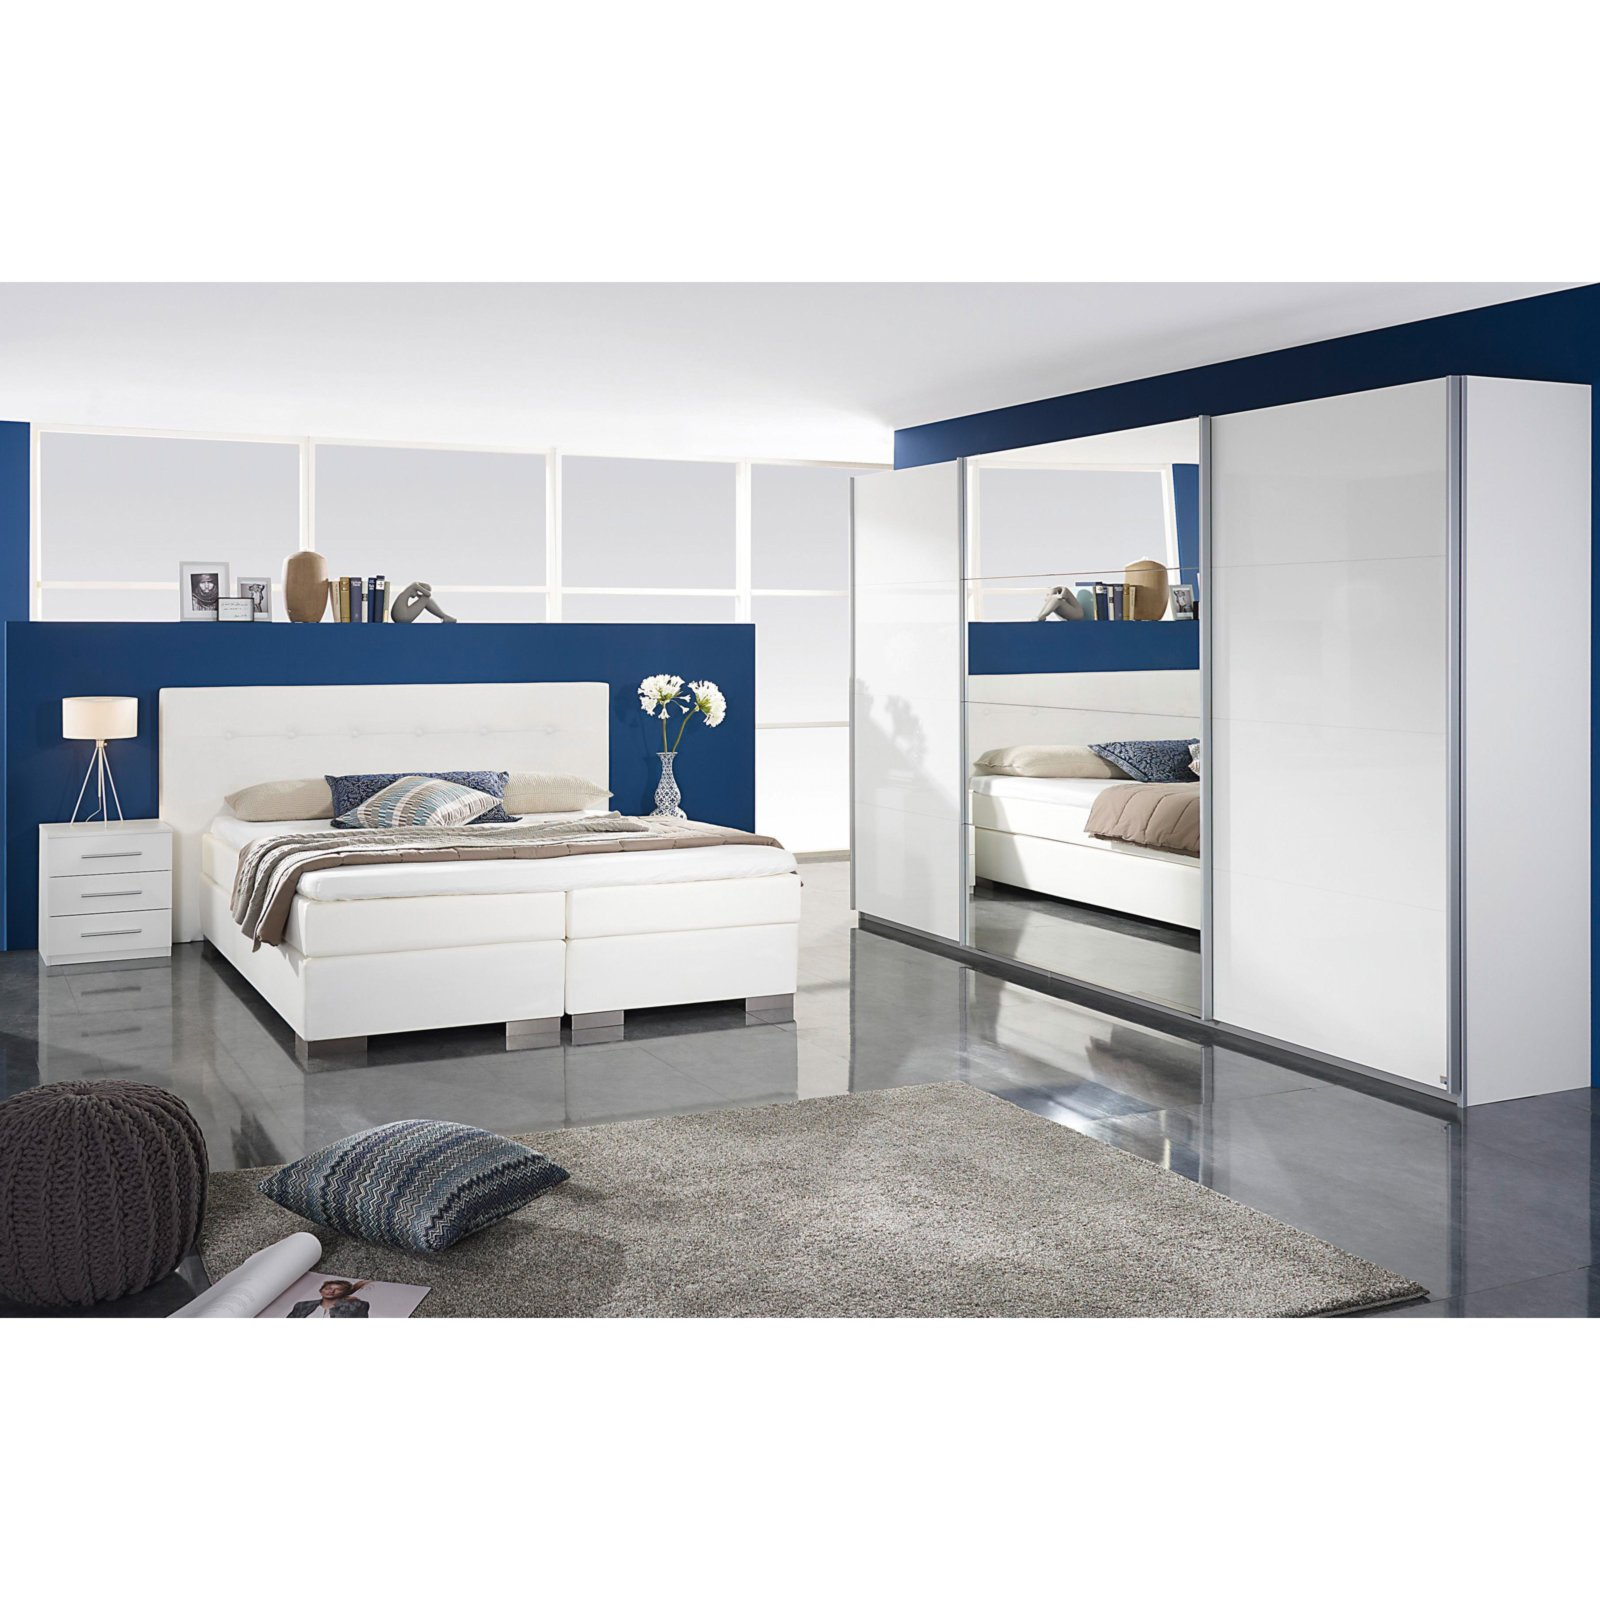 roller schwebet renschrank imposa wei hochglanz 315 cm ebay. Black Bedroom Furniture Sets. Home Design Ideas